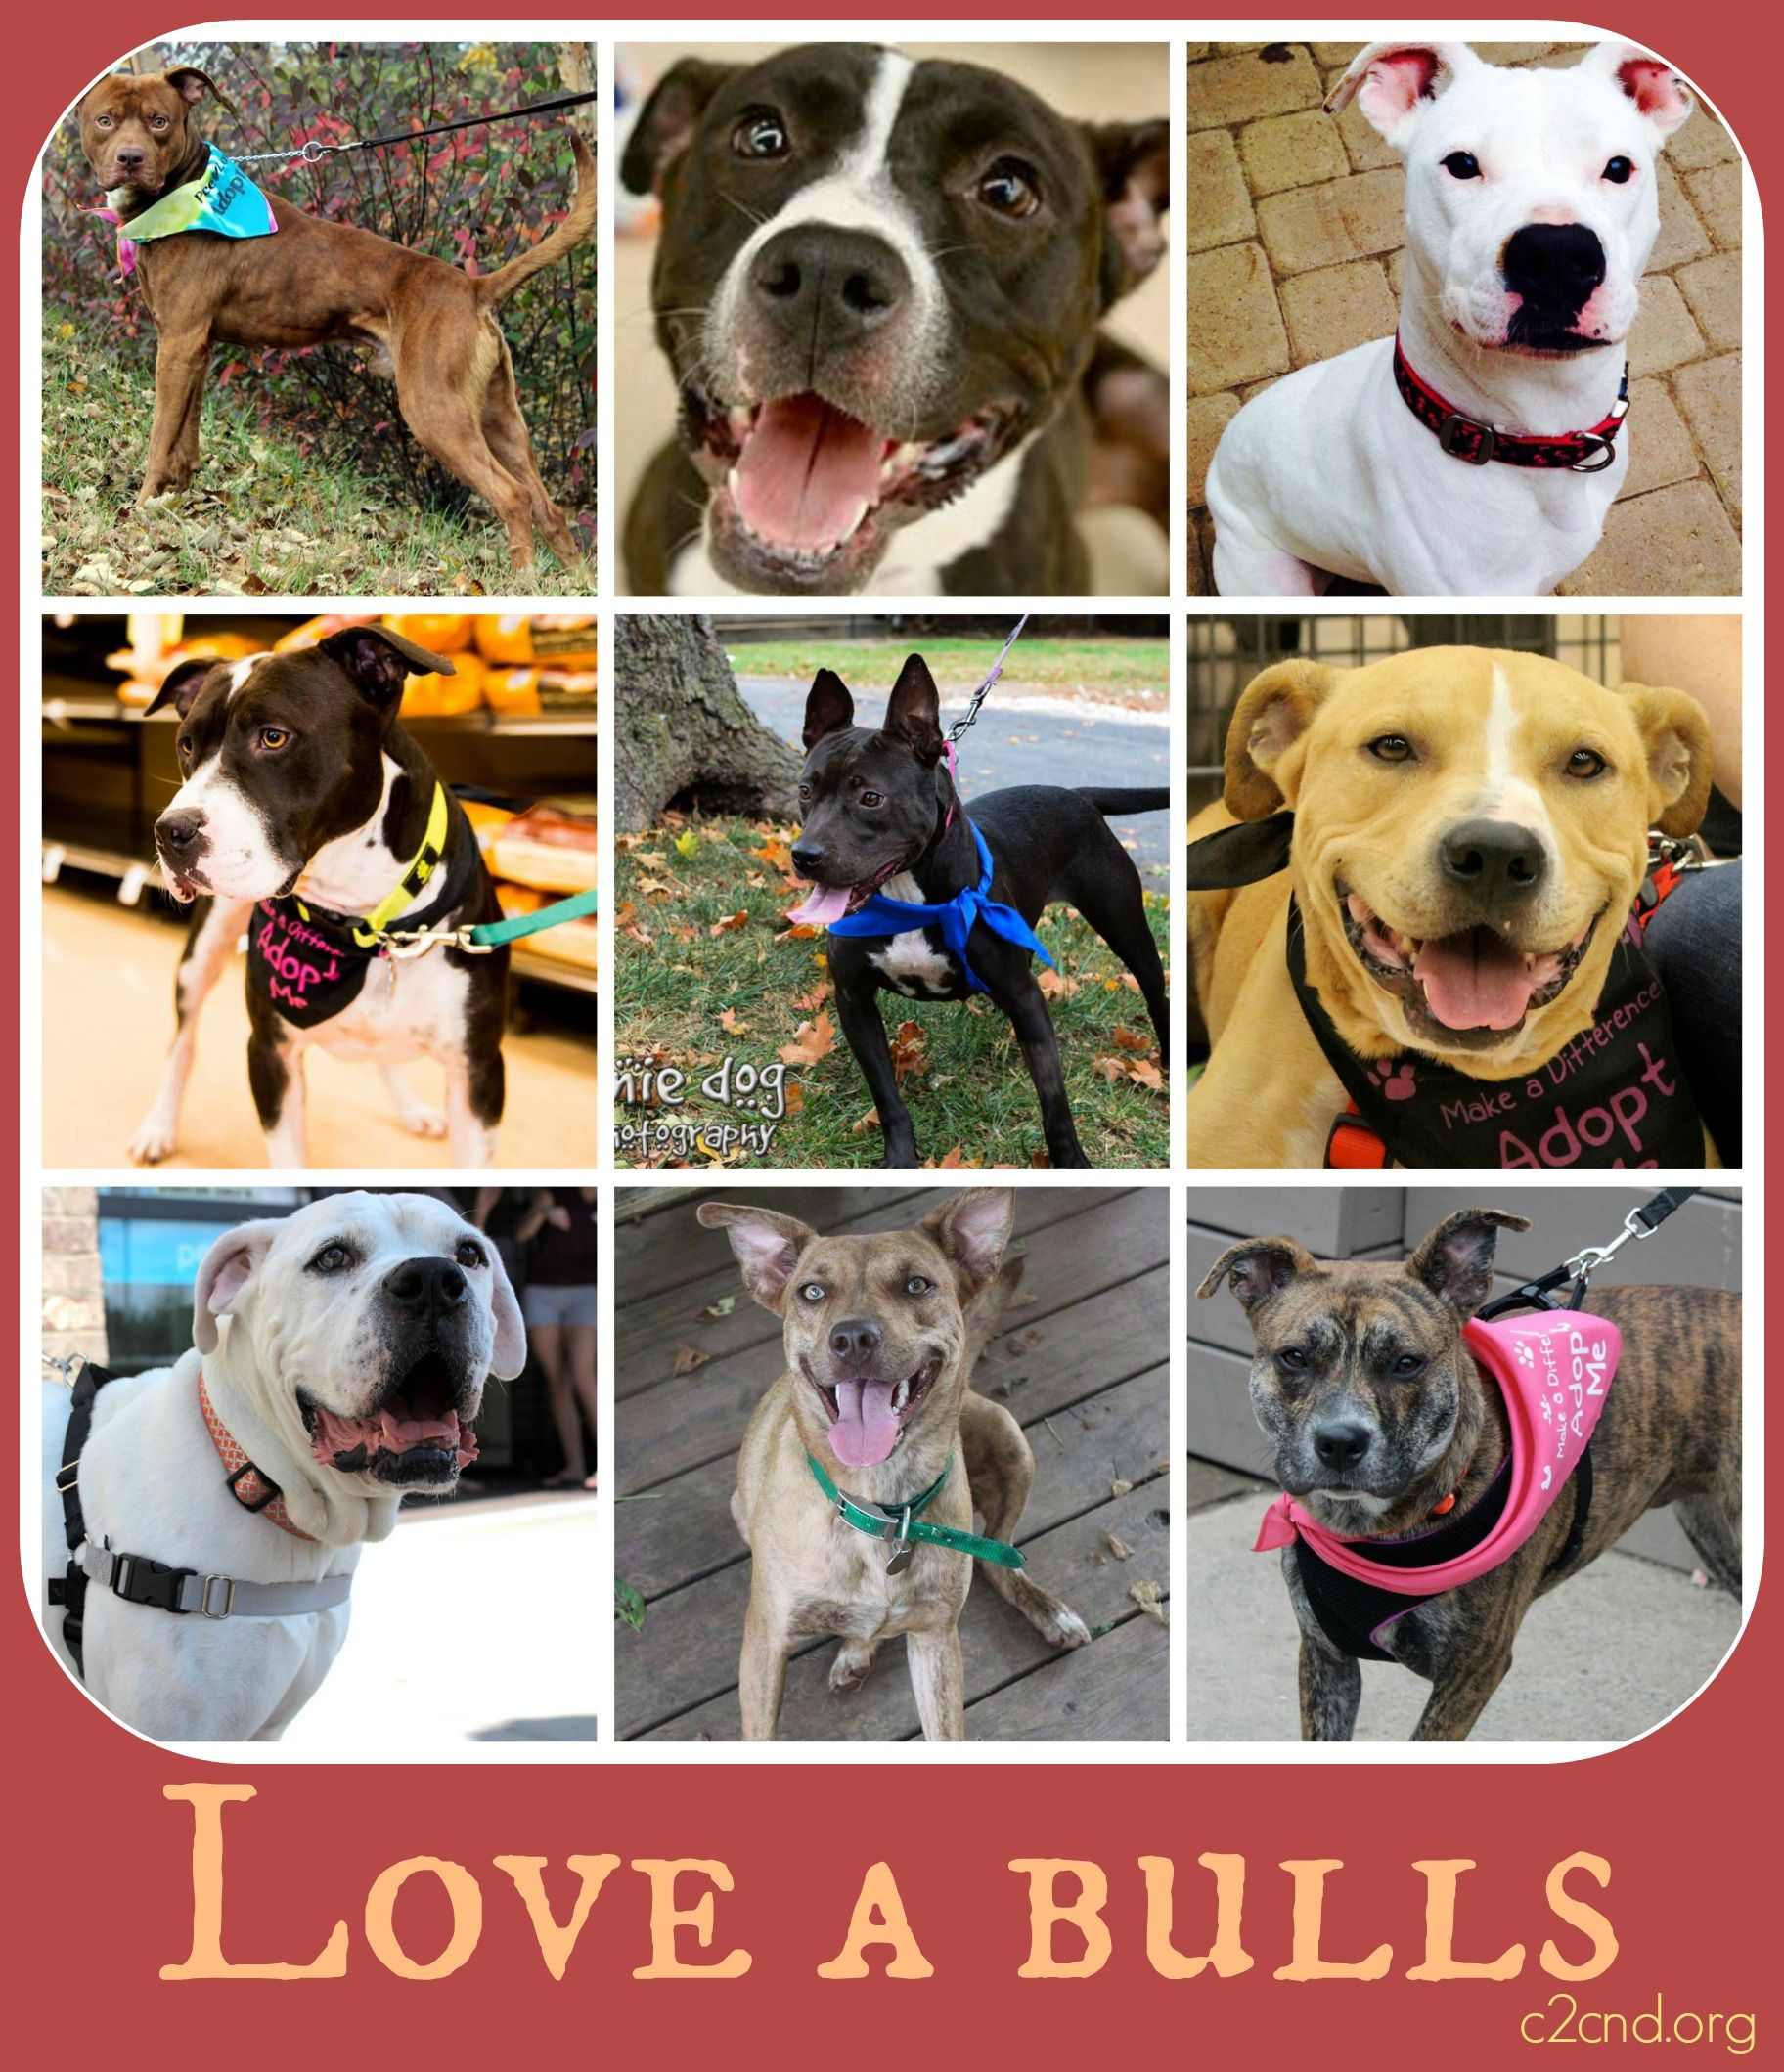 Catering to Cats & Dogs rescue - meet our lovable & adoptable bully mixes! visit c2cnd.org to adopt one!